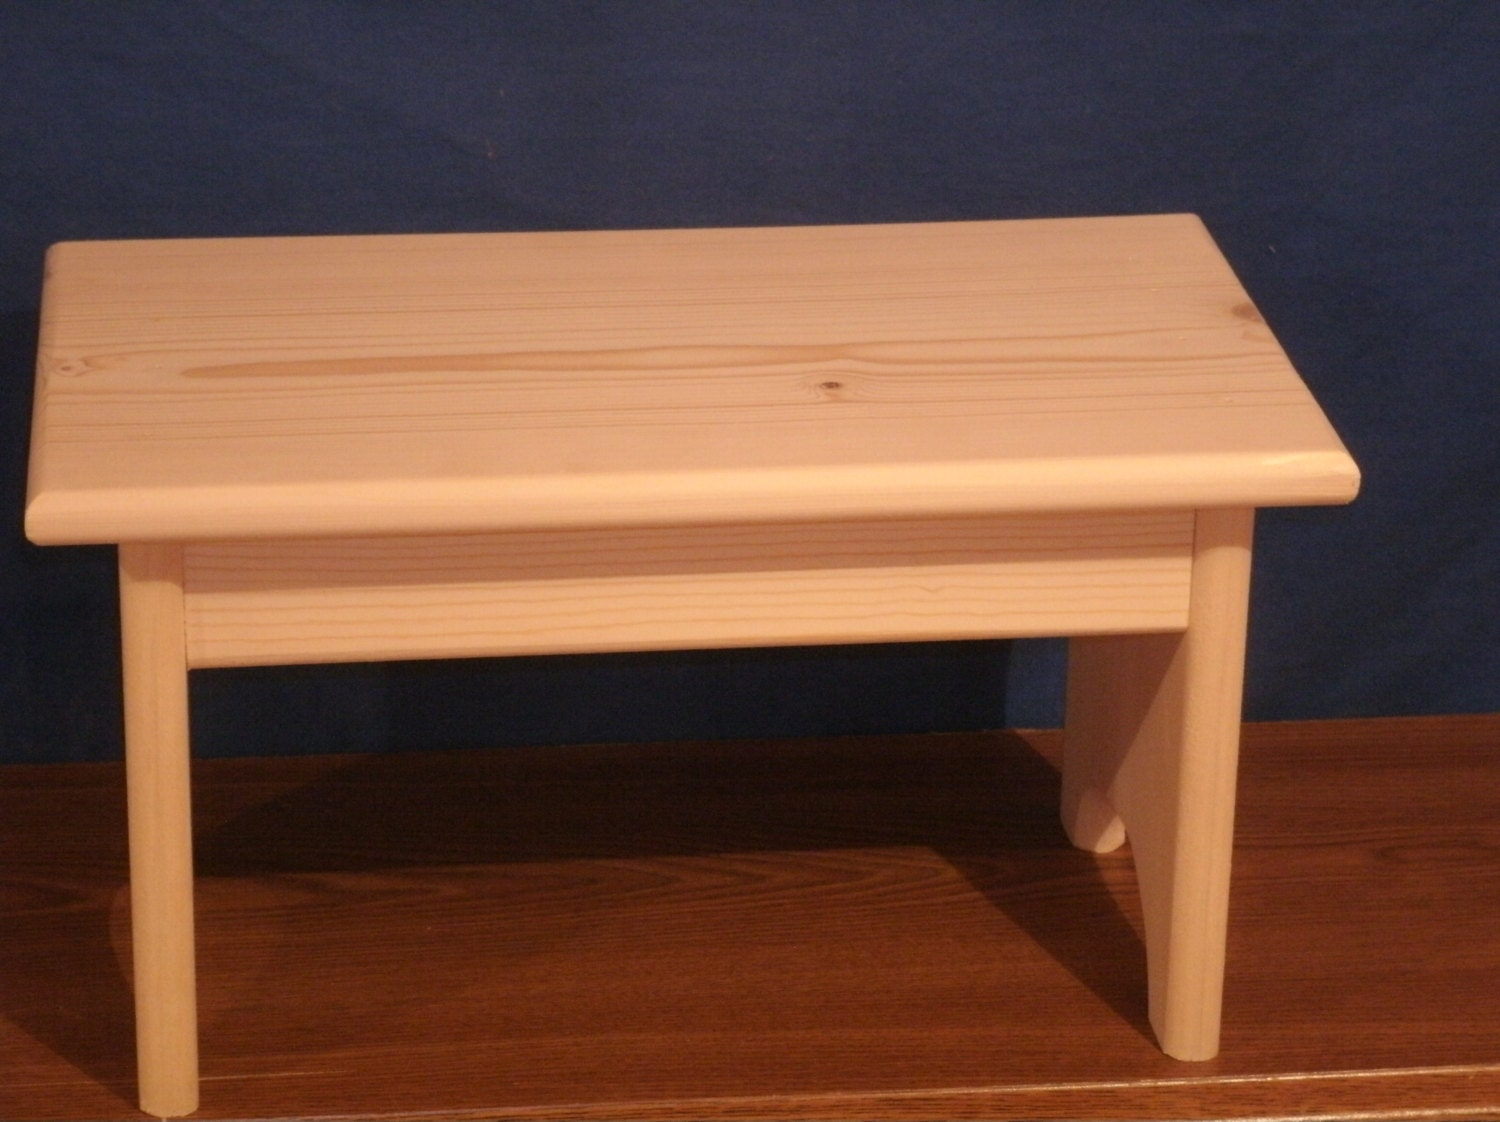 Wood Step Stool Wooden Stoolrustic Wooden Stool Unfinished